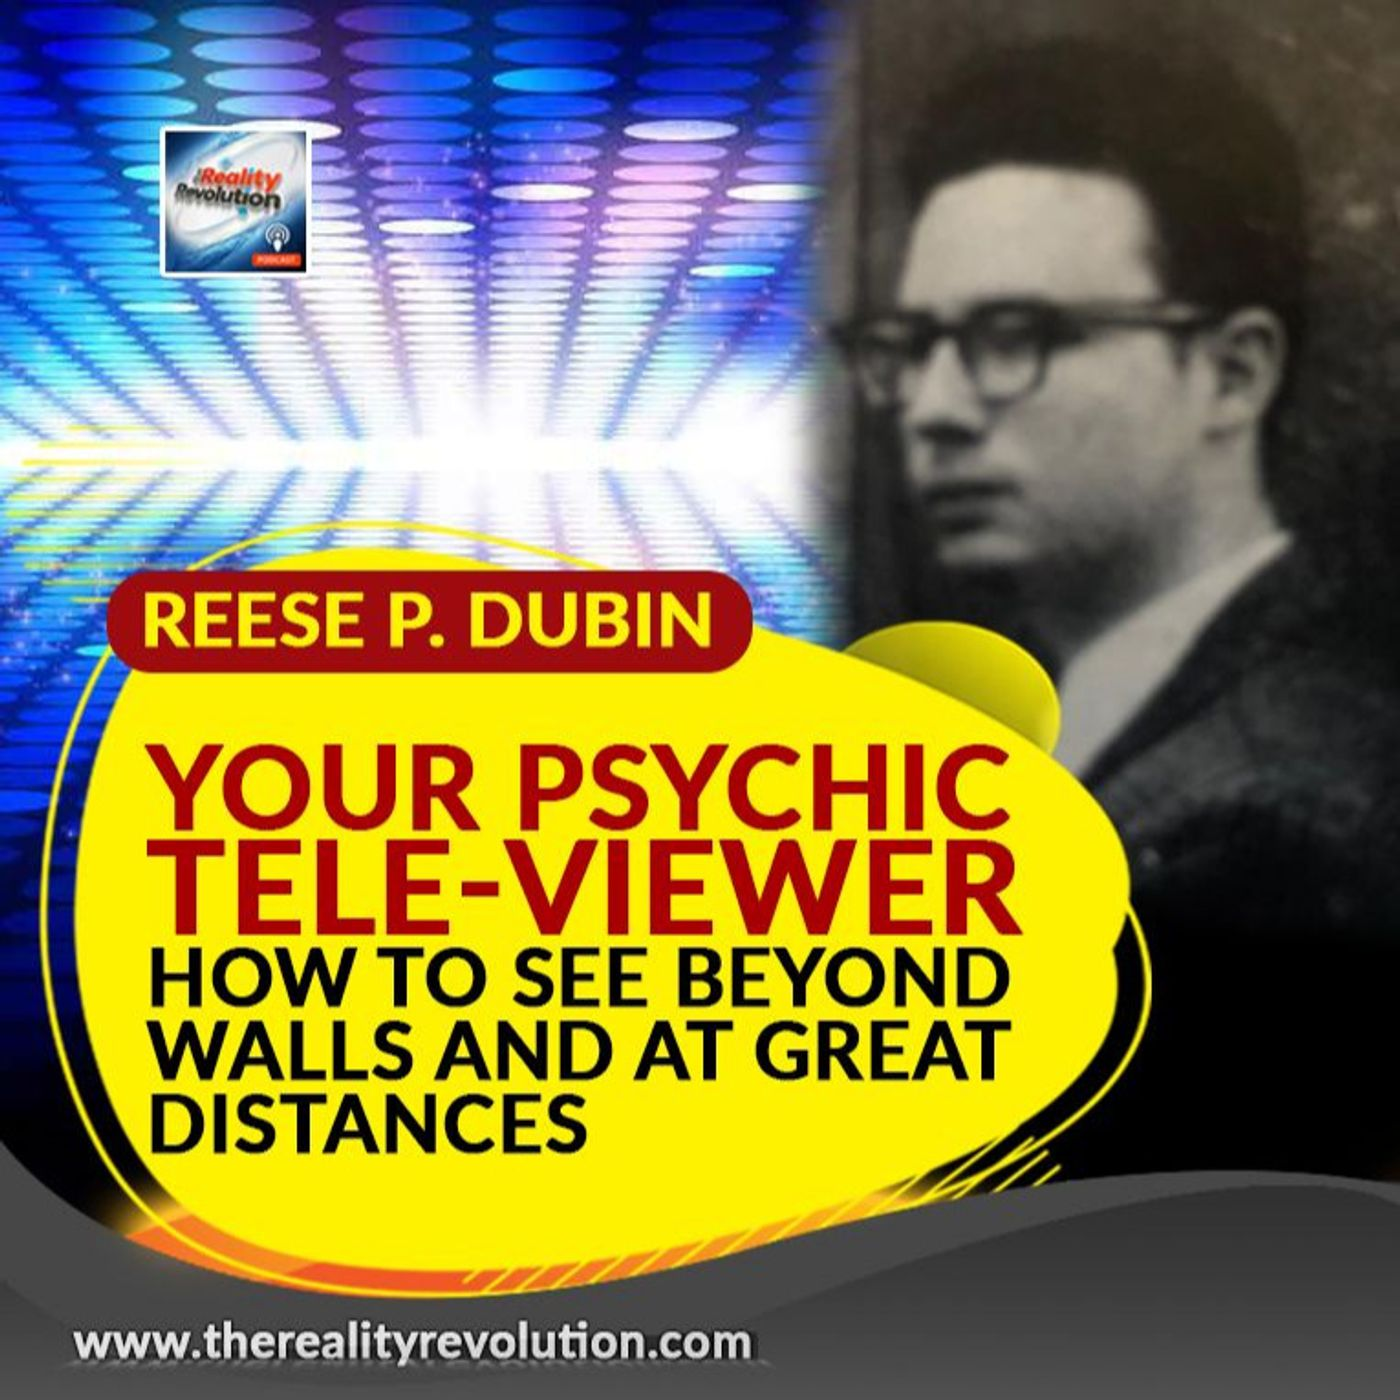 Reese P. Dubin - Your Psychic Tele-Viewer How To See Beyond Walls And At Great Distances